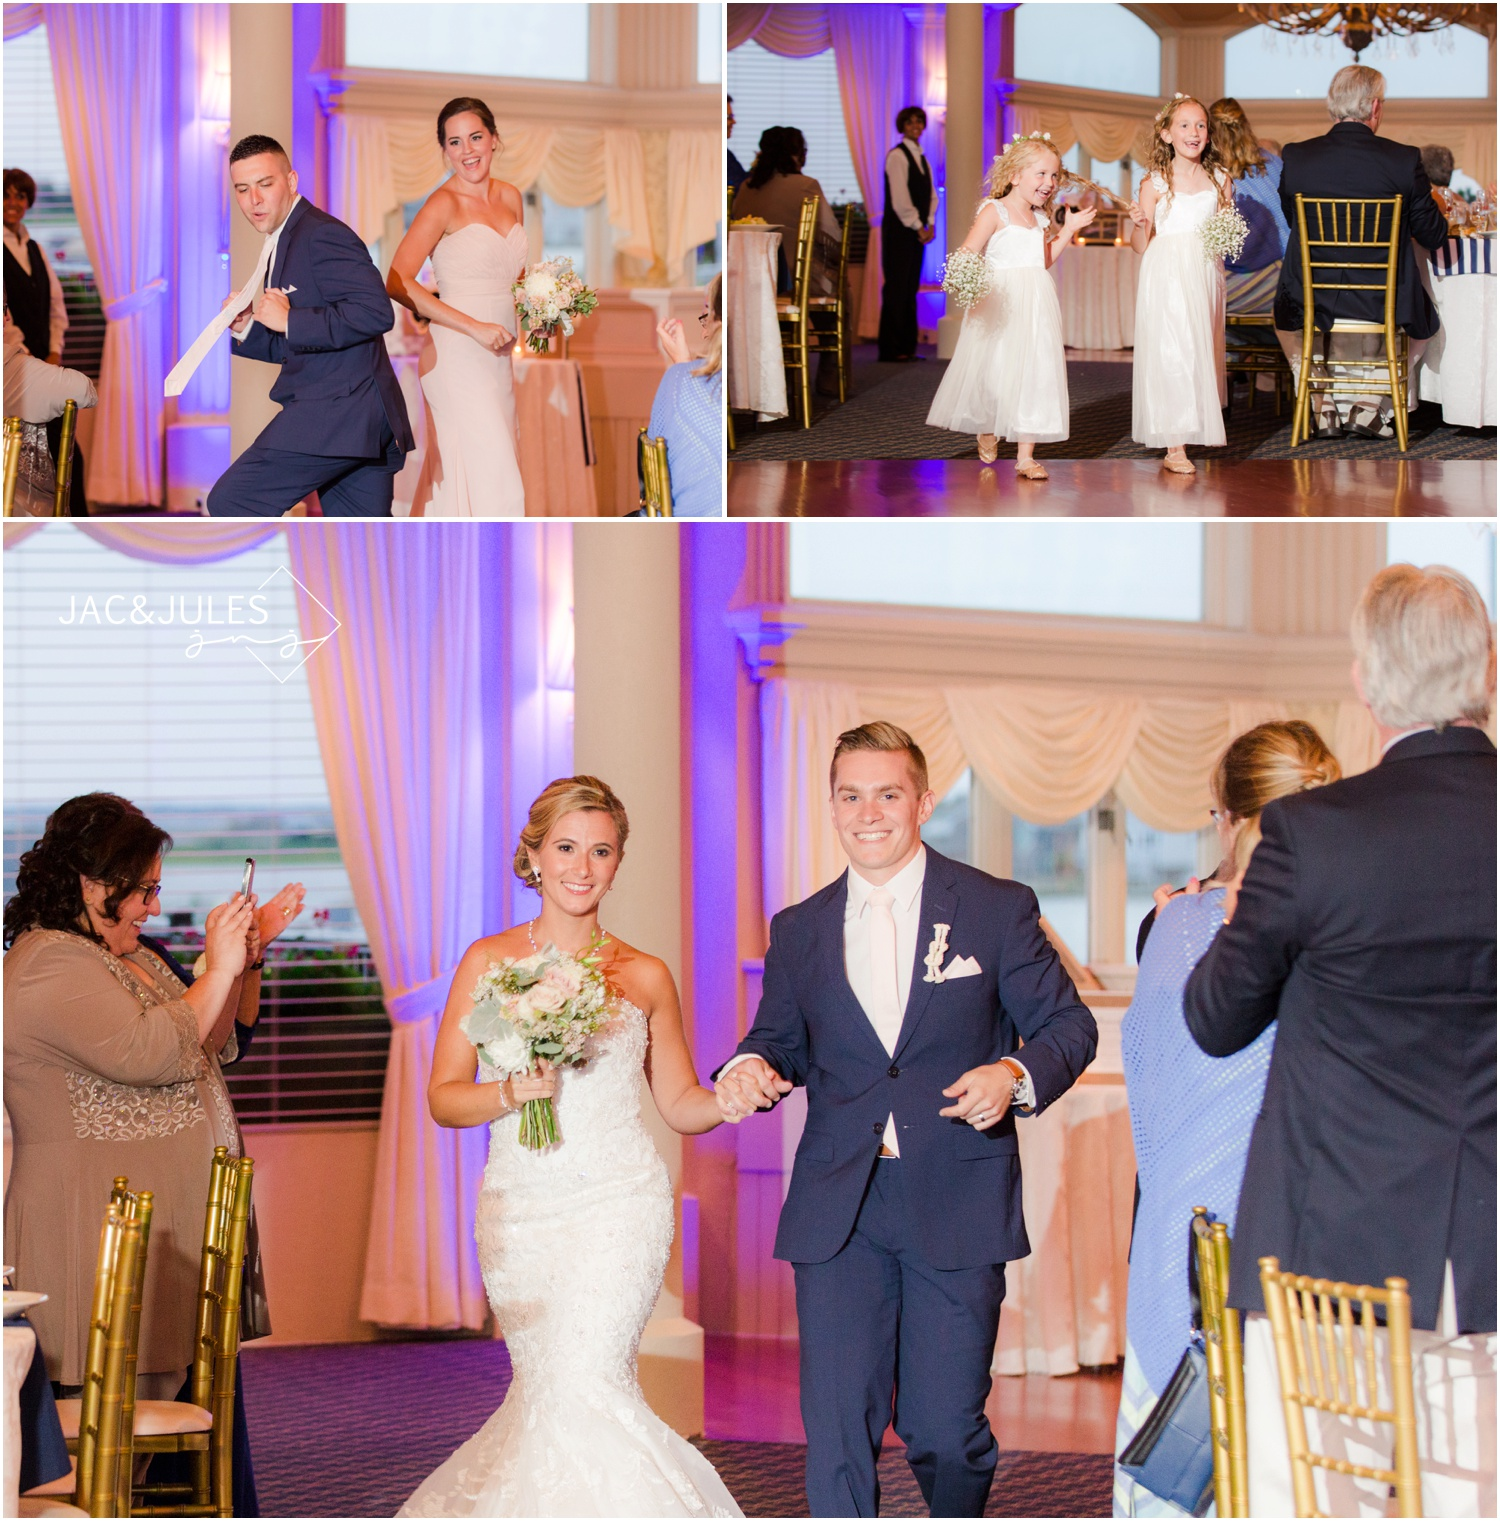 Reception entrances with pretty purple uplighting by SCE Event Group at The Stateroom in LBI, NJ